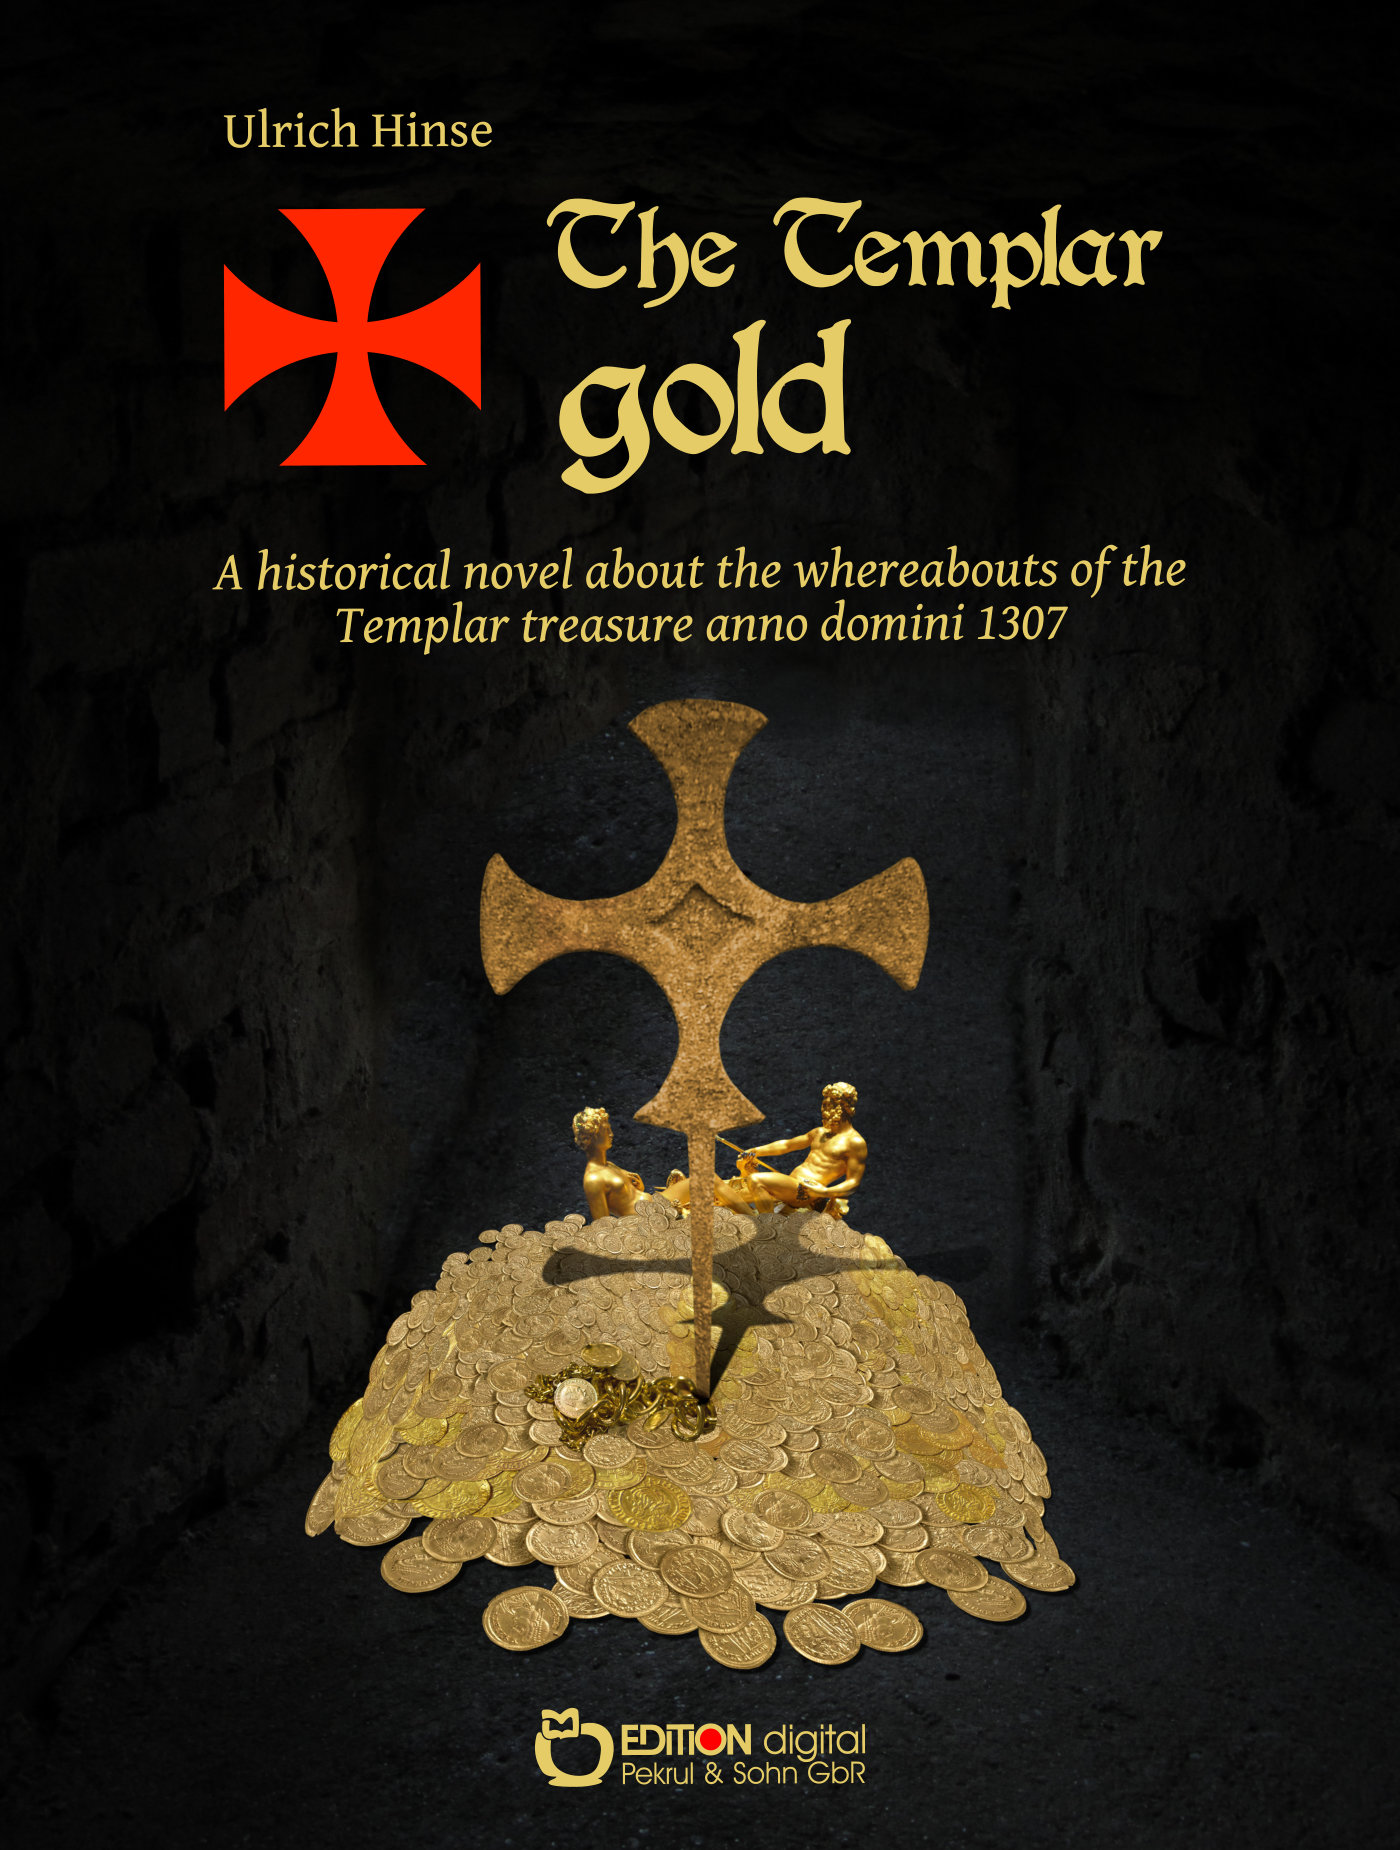 The Templar gold. A historical novel about the whreabouts of the Templar treasure anno domini 1307 von Ulrich Hinse